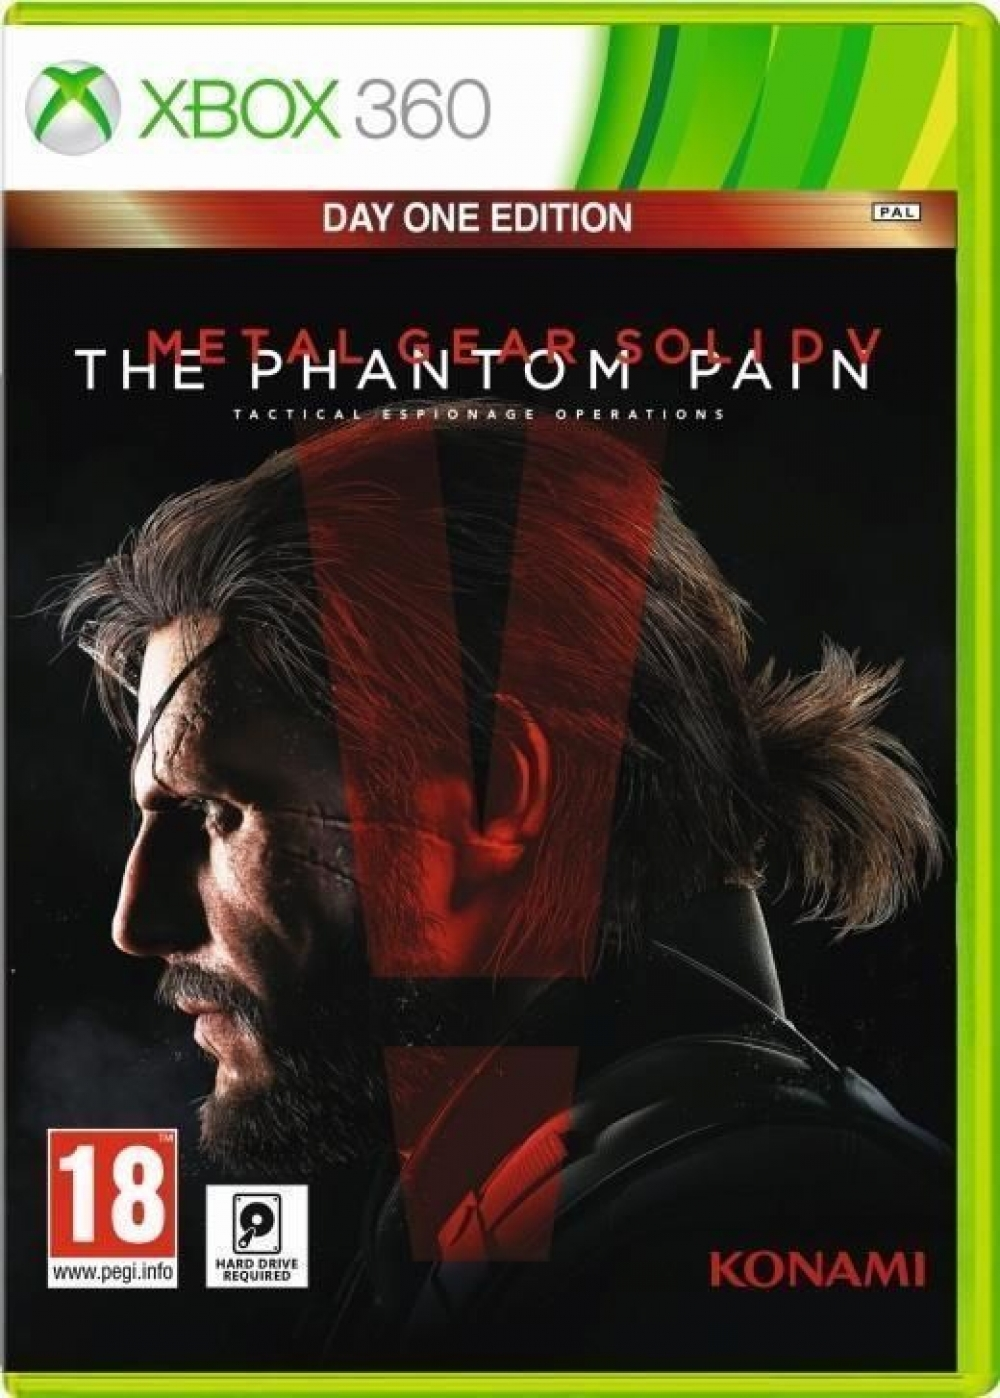 Joc Metal Gear Solid 5 The Phantom Pain D1 Edition pentru Xbox 360 imagine